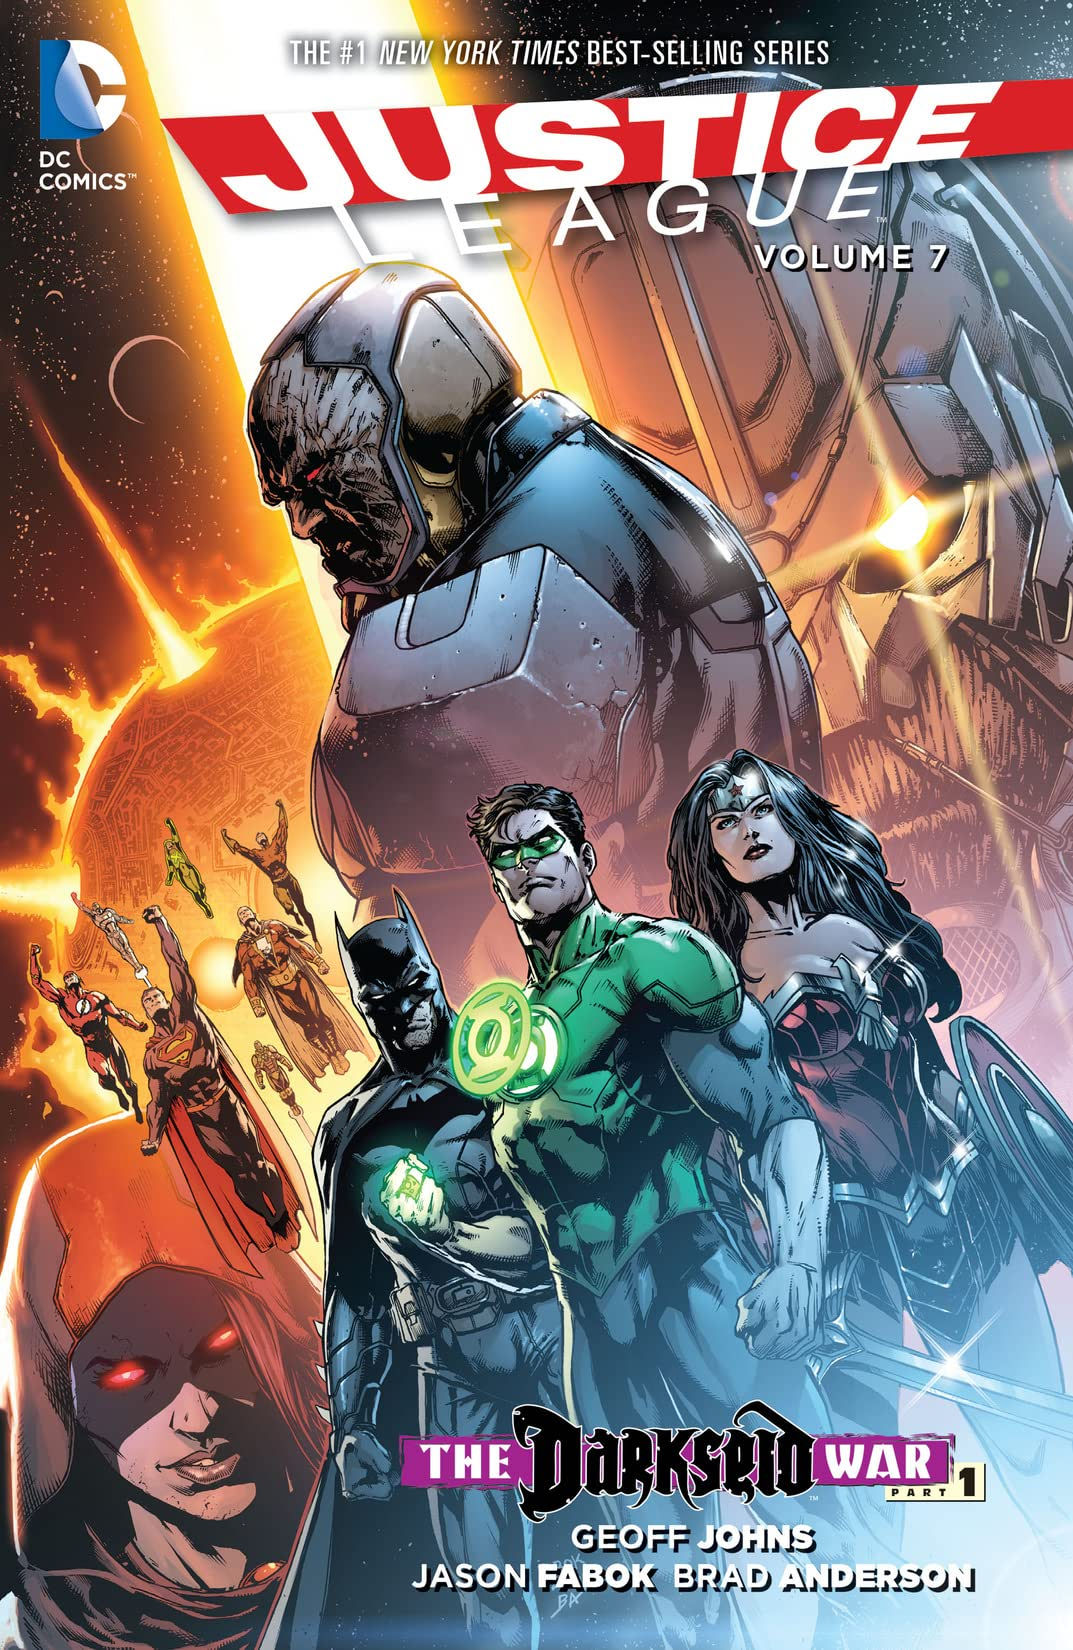 Justice League (2011-2016) Vol. 7: Darkseid War